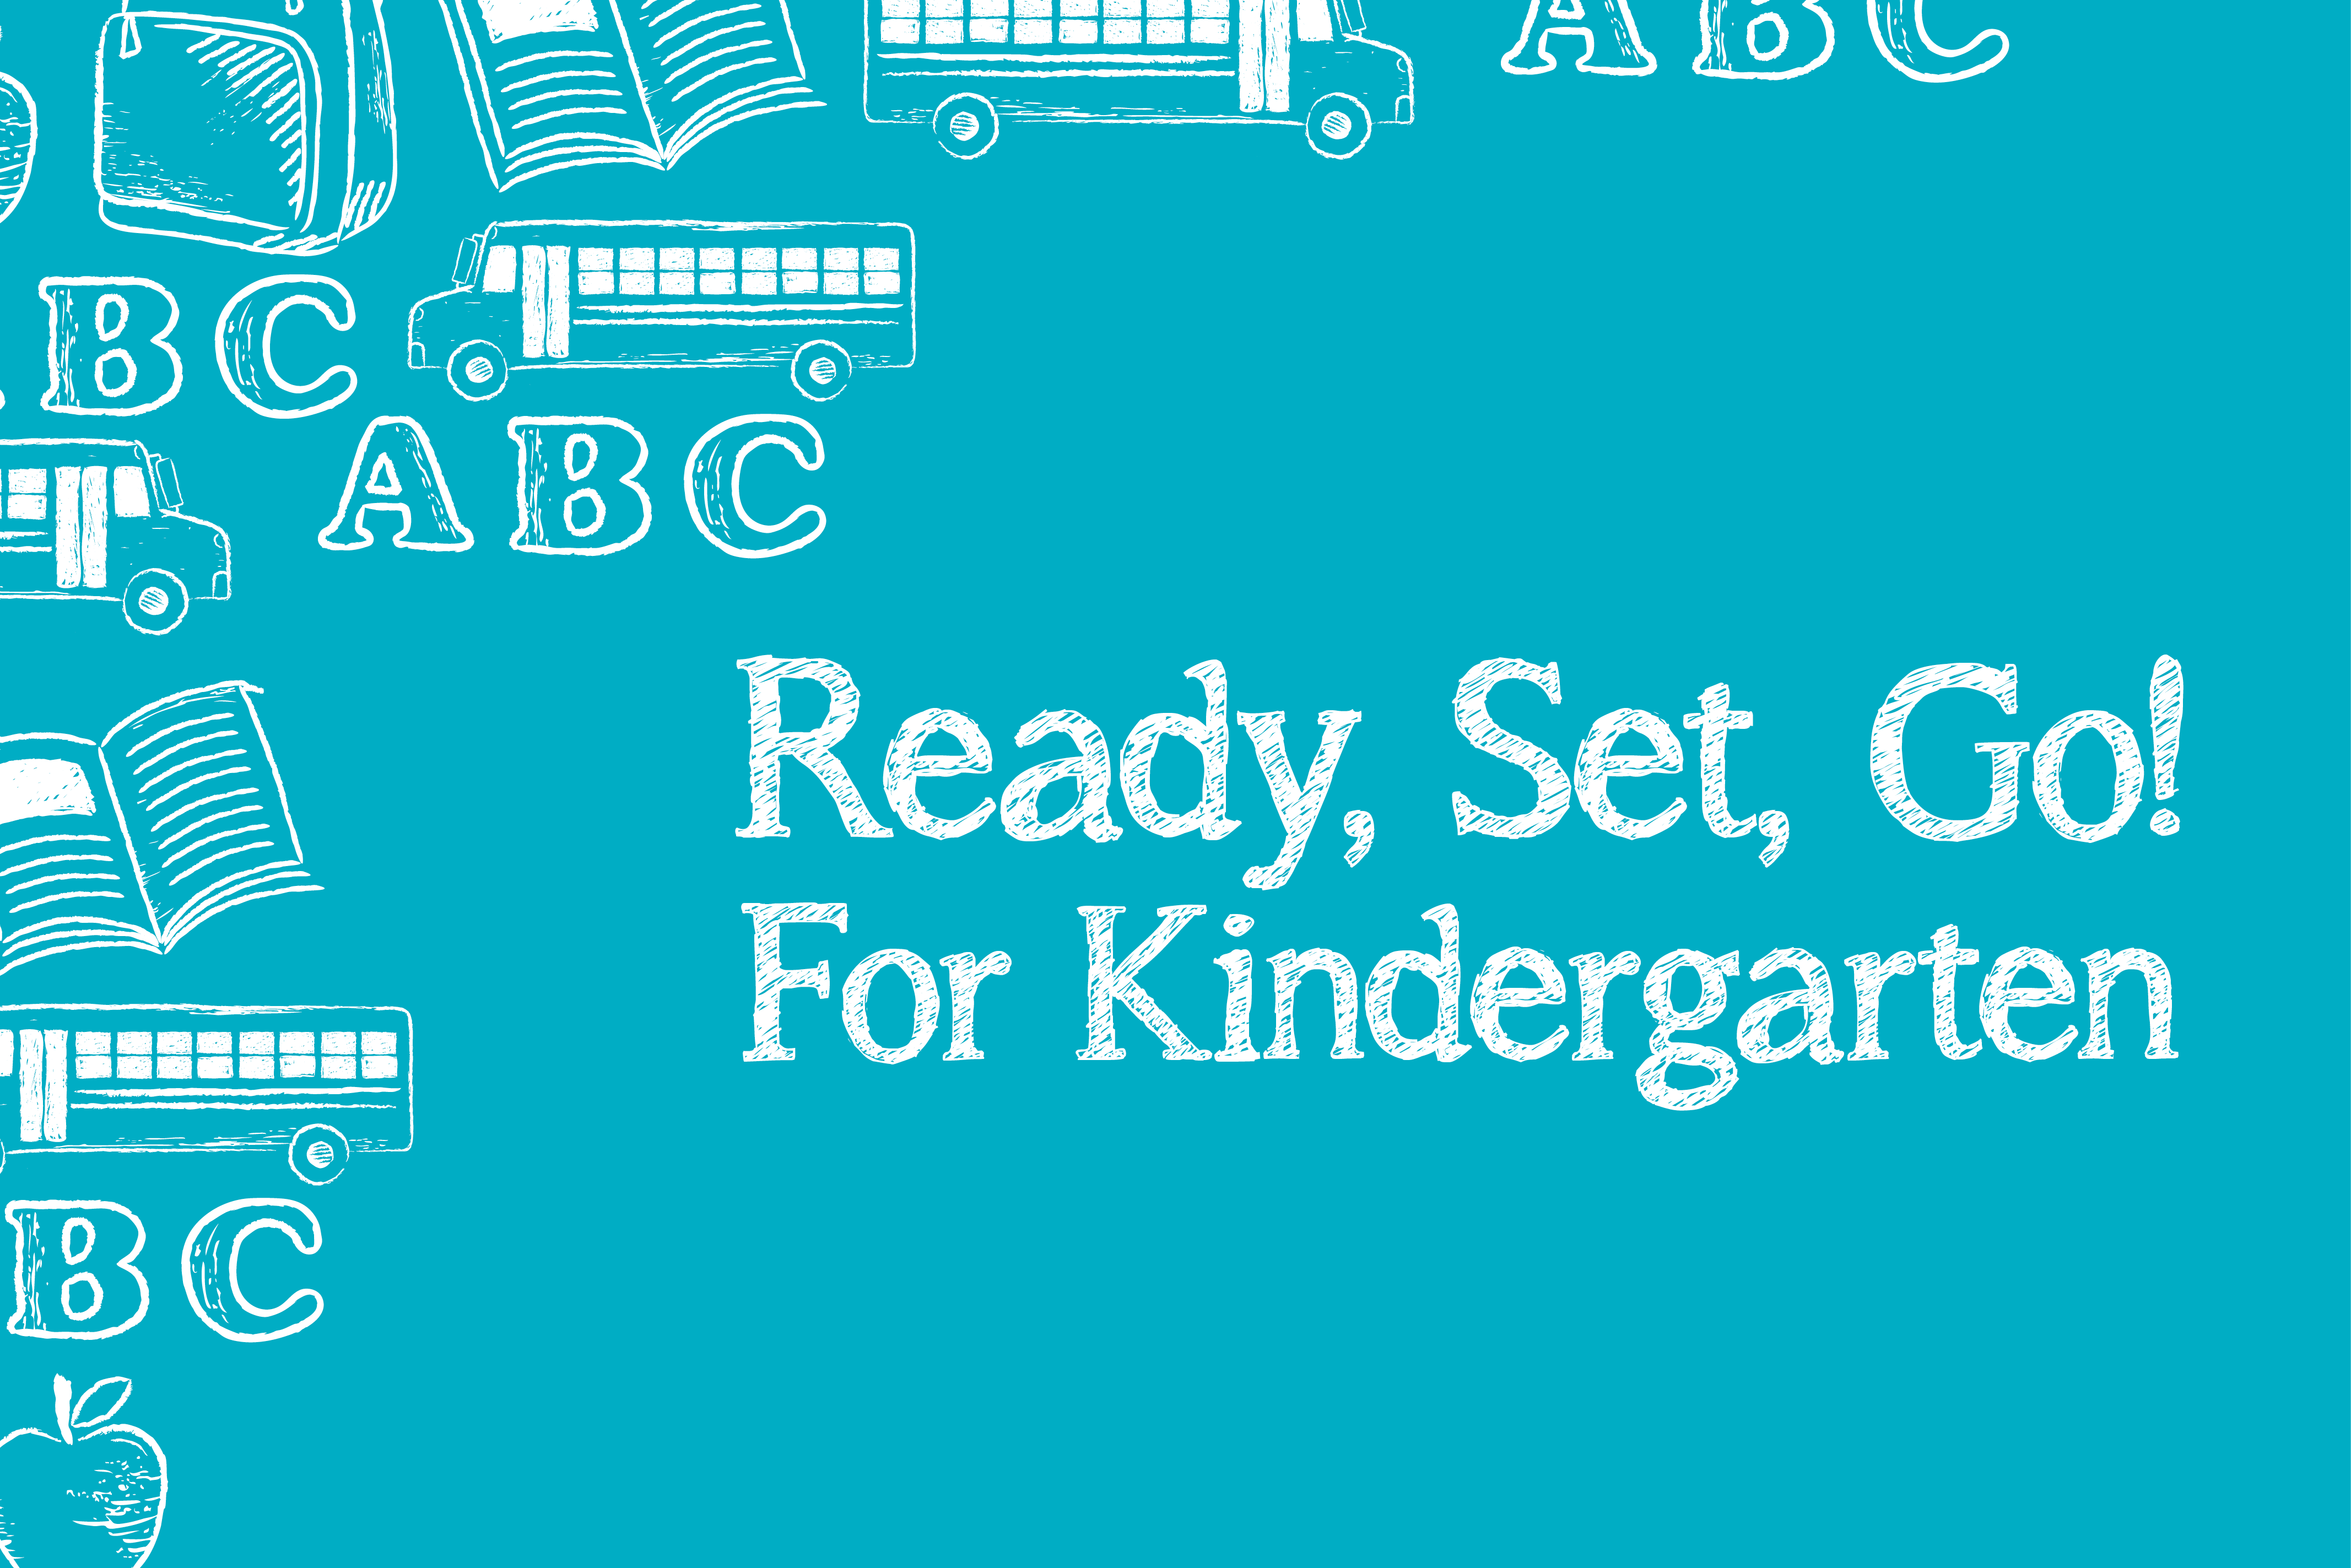 Prepare Your Child for Kindergarten with Ready, Set, Go!